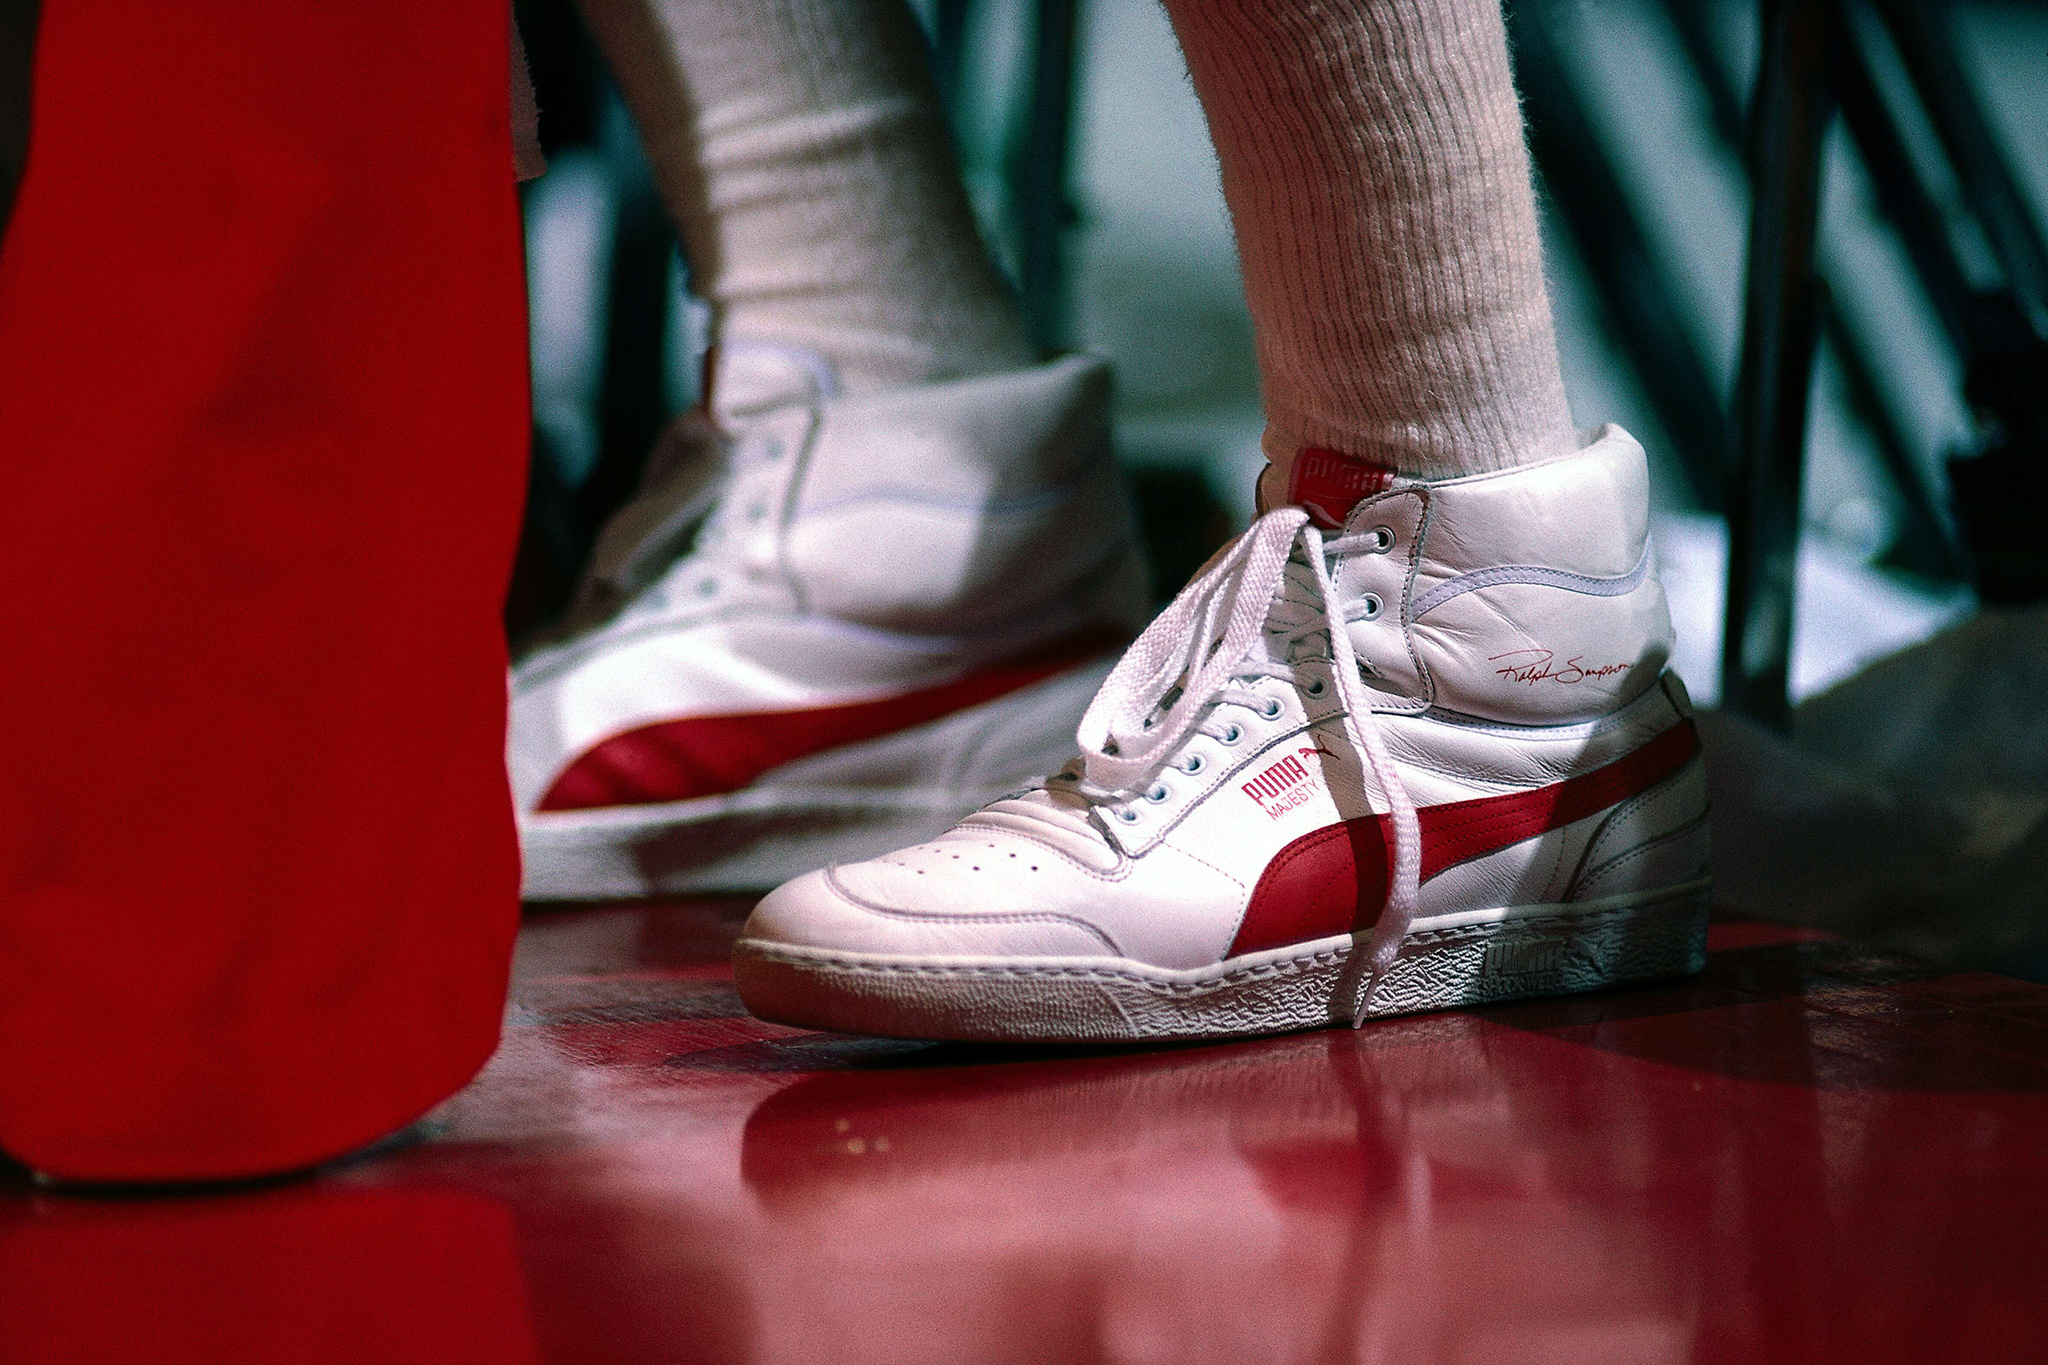 best sneakers c375f b4015 1985  A closeup of the Houston Rockets Ralph Sampson s sneakers during the  NBA game in Houston, Texas. (Photo by Andrew D. Bernstein NBAE Getty Images)